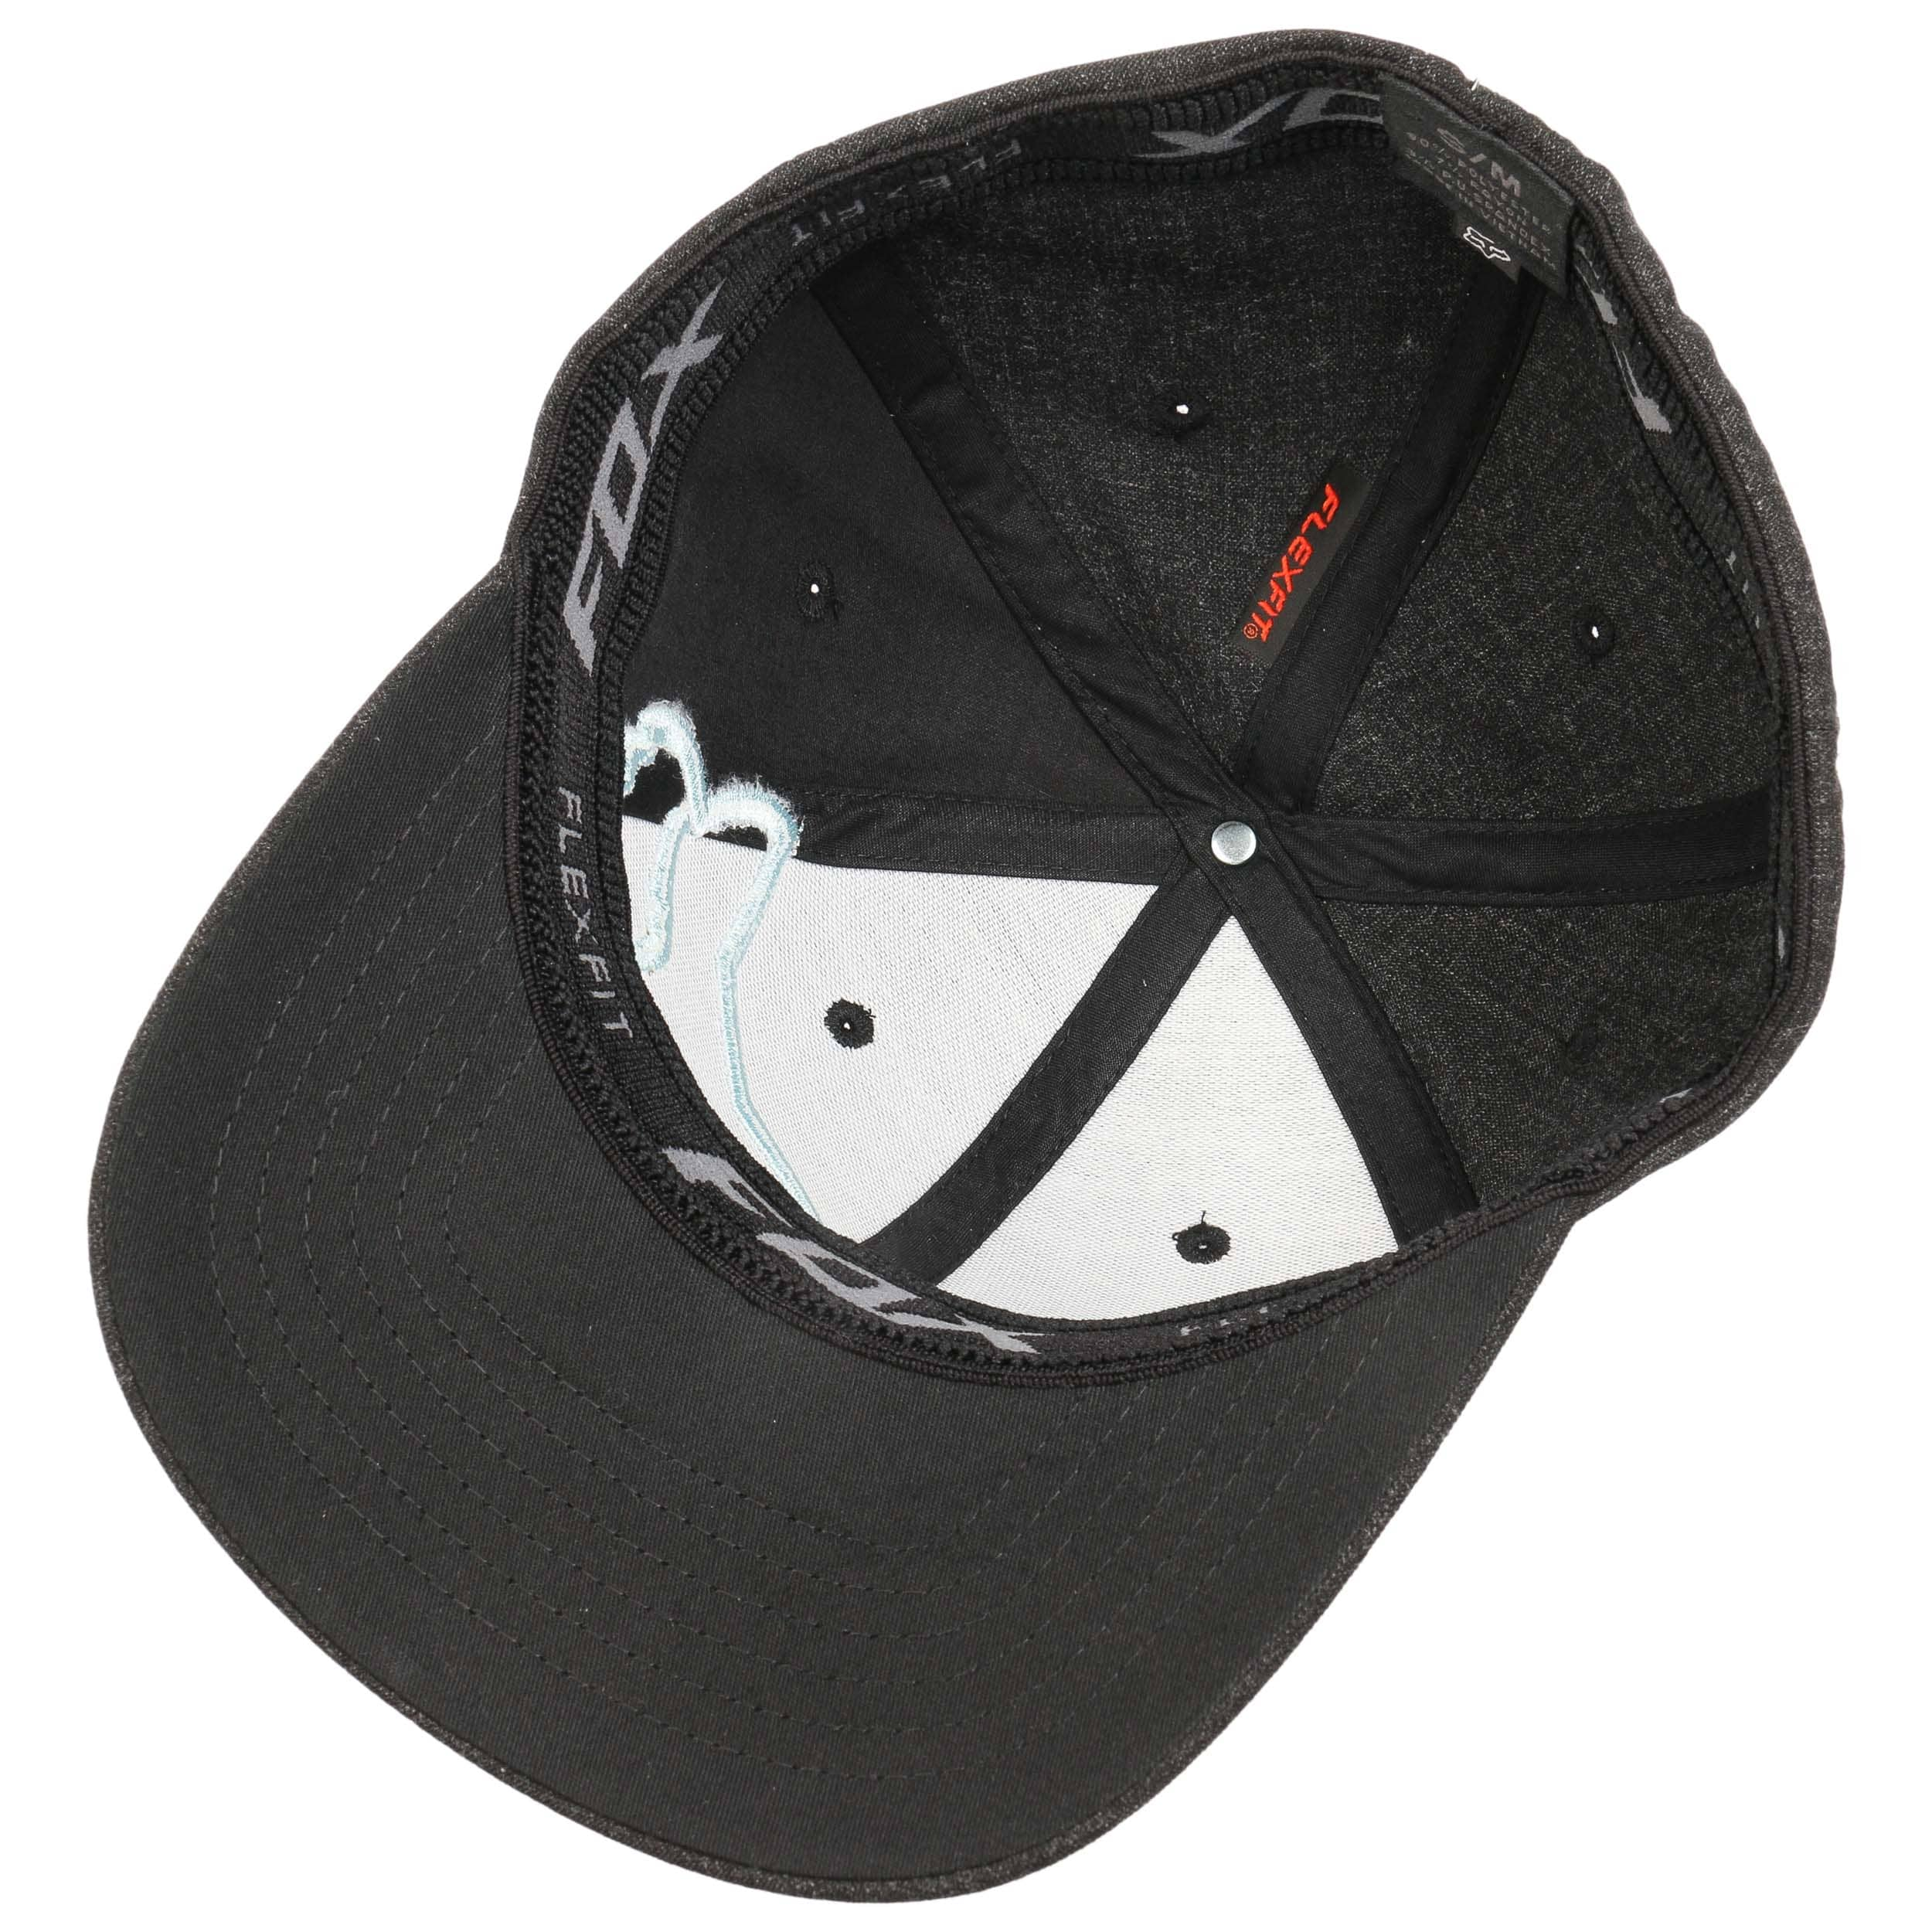 ... Clouded Flexfit Cap by FOX - black-white 2 ... cdc9b38d9f4